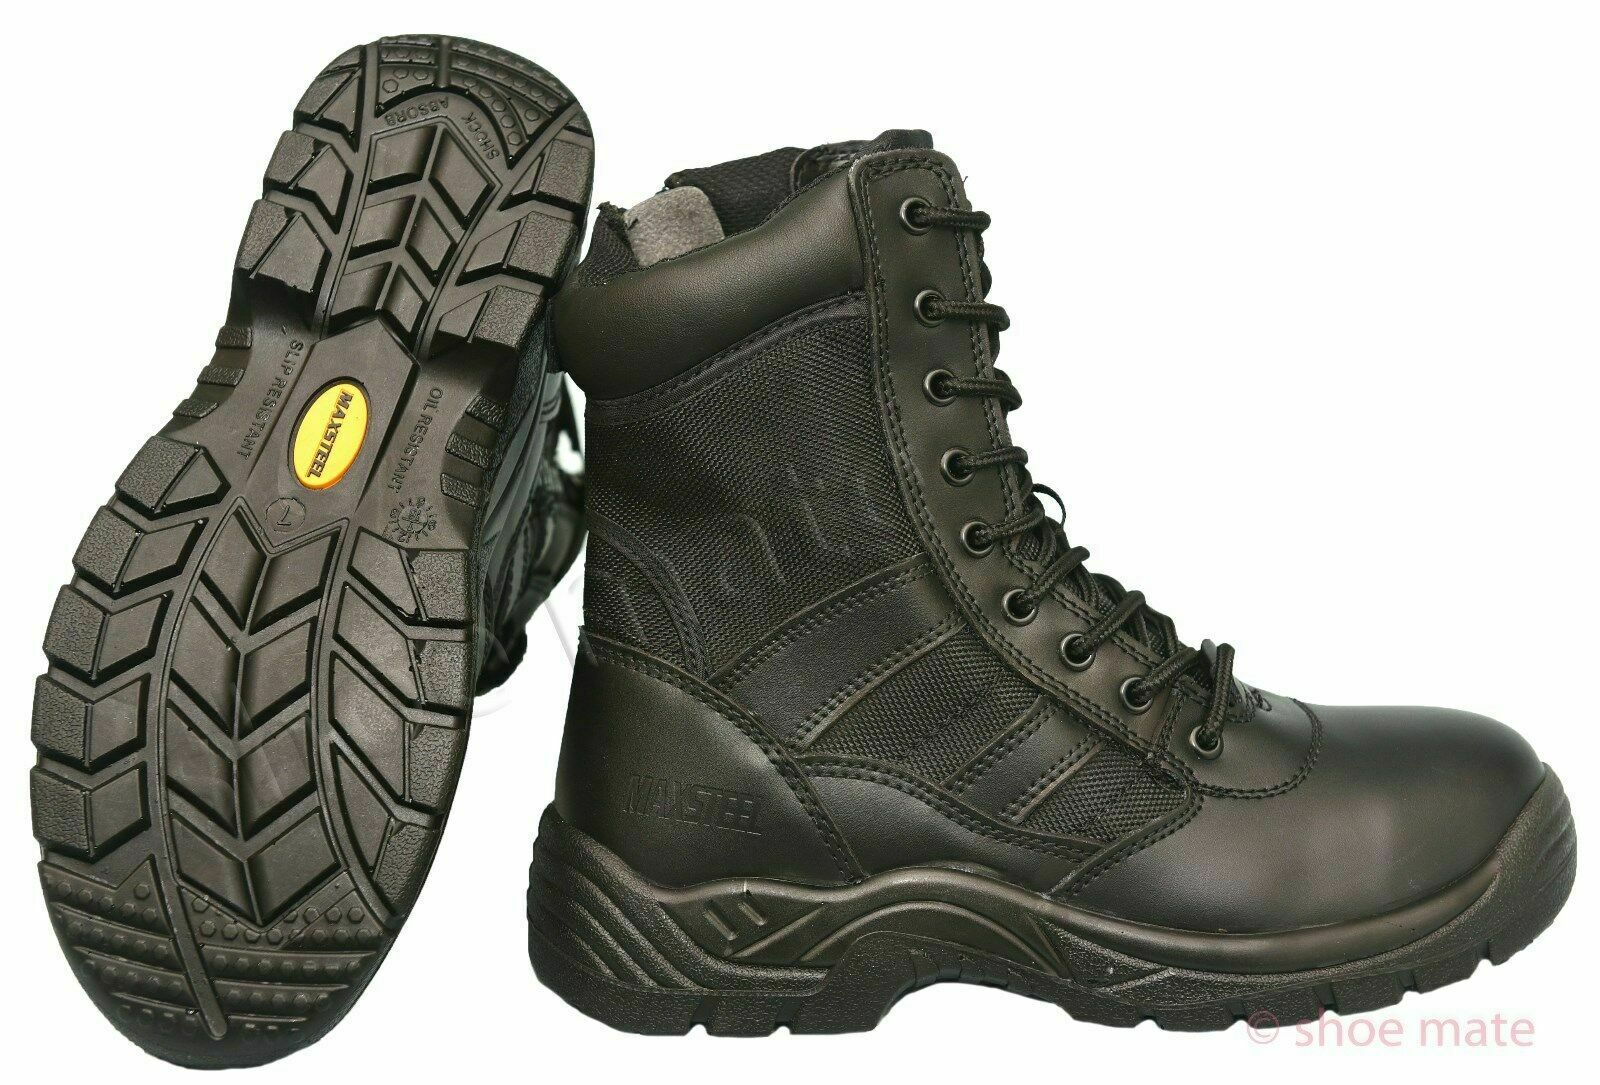 New Mens Non Safety Lightweight Police Army Tactical Military Work Boots Shoes Z